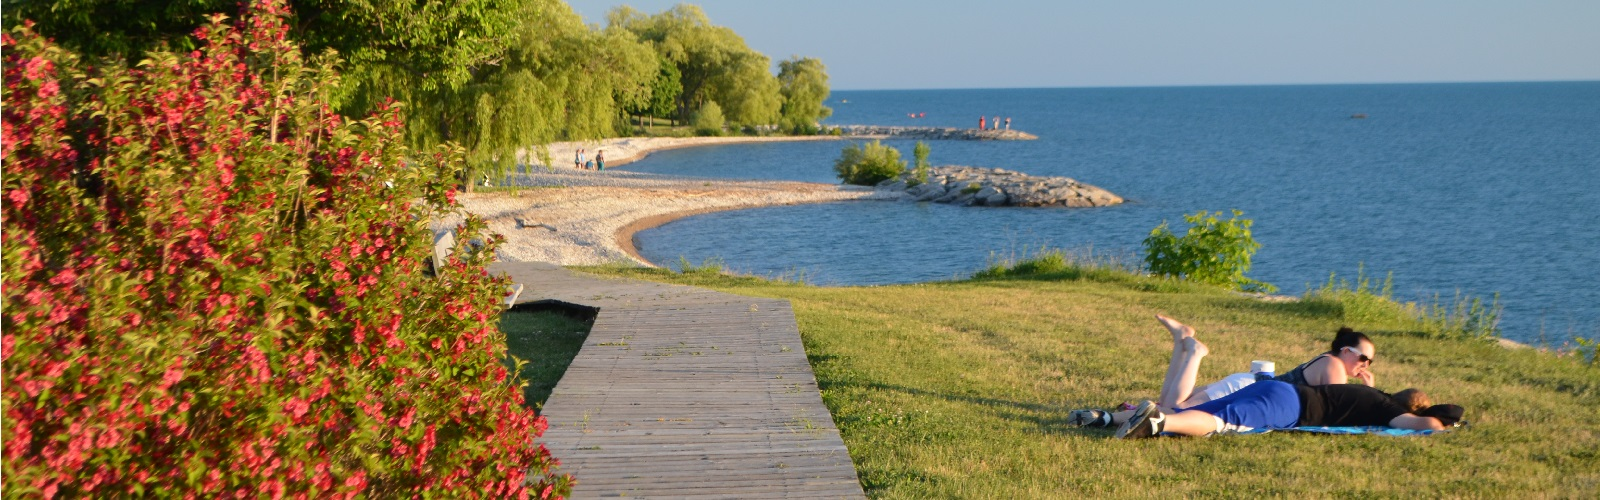 goderich beach front and boardwalk